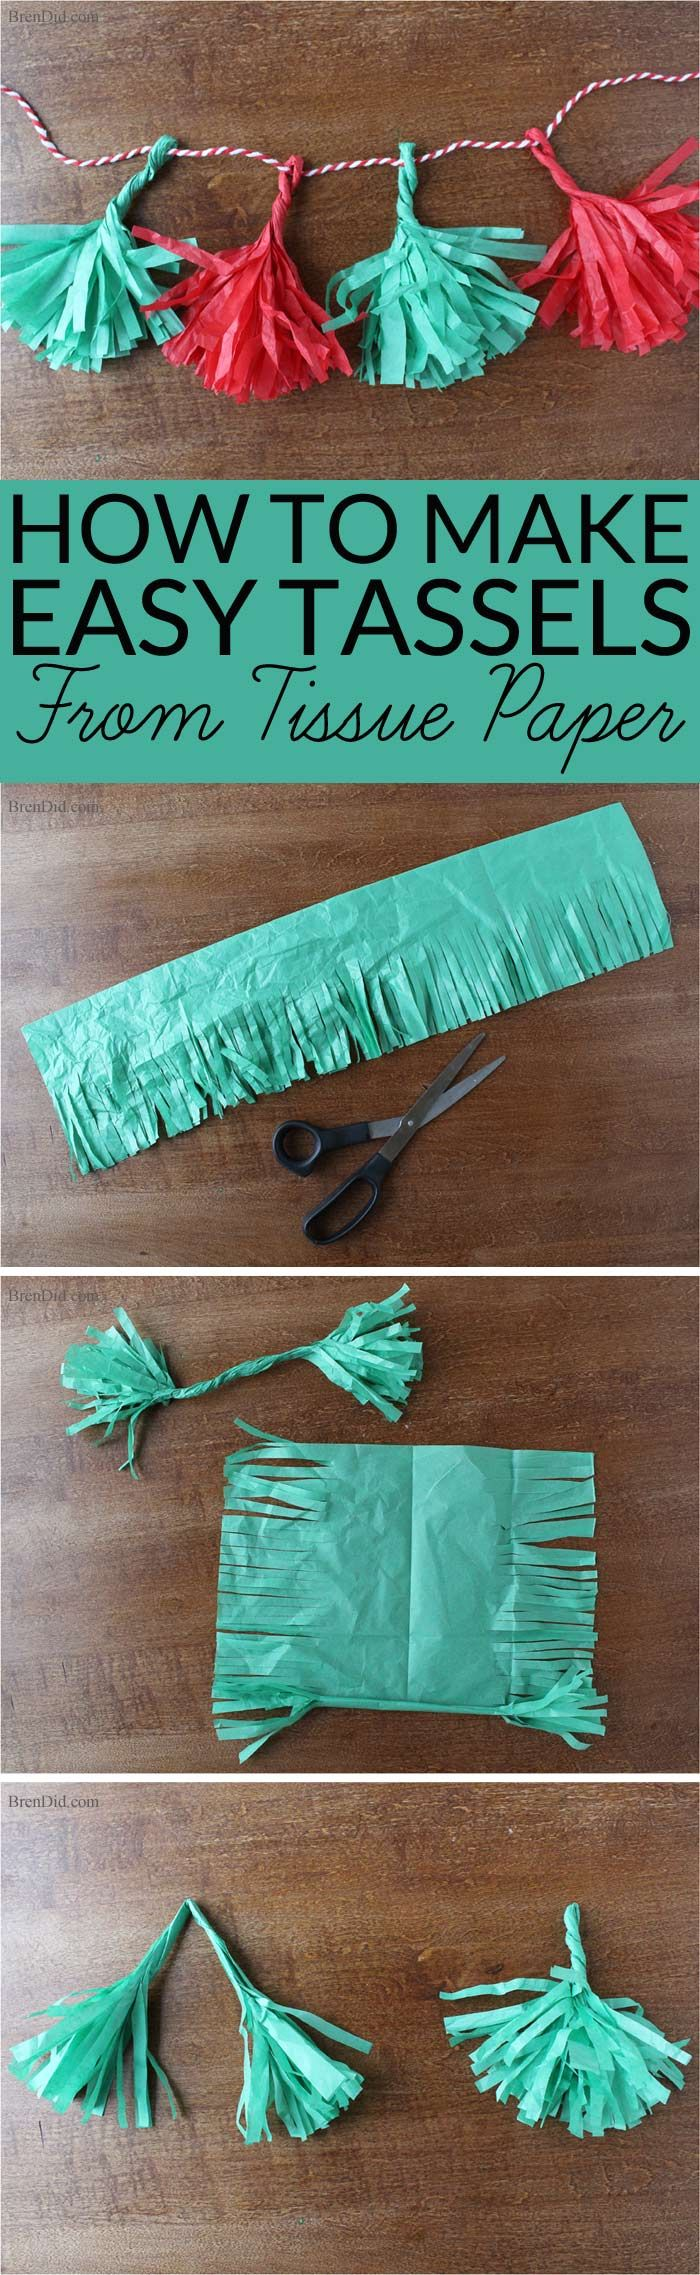 How to Make Tassels from Tissue Paper - Make your own free eco-friendly paper ta...